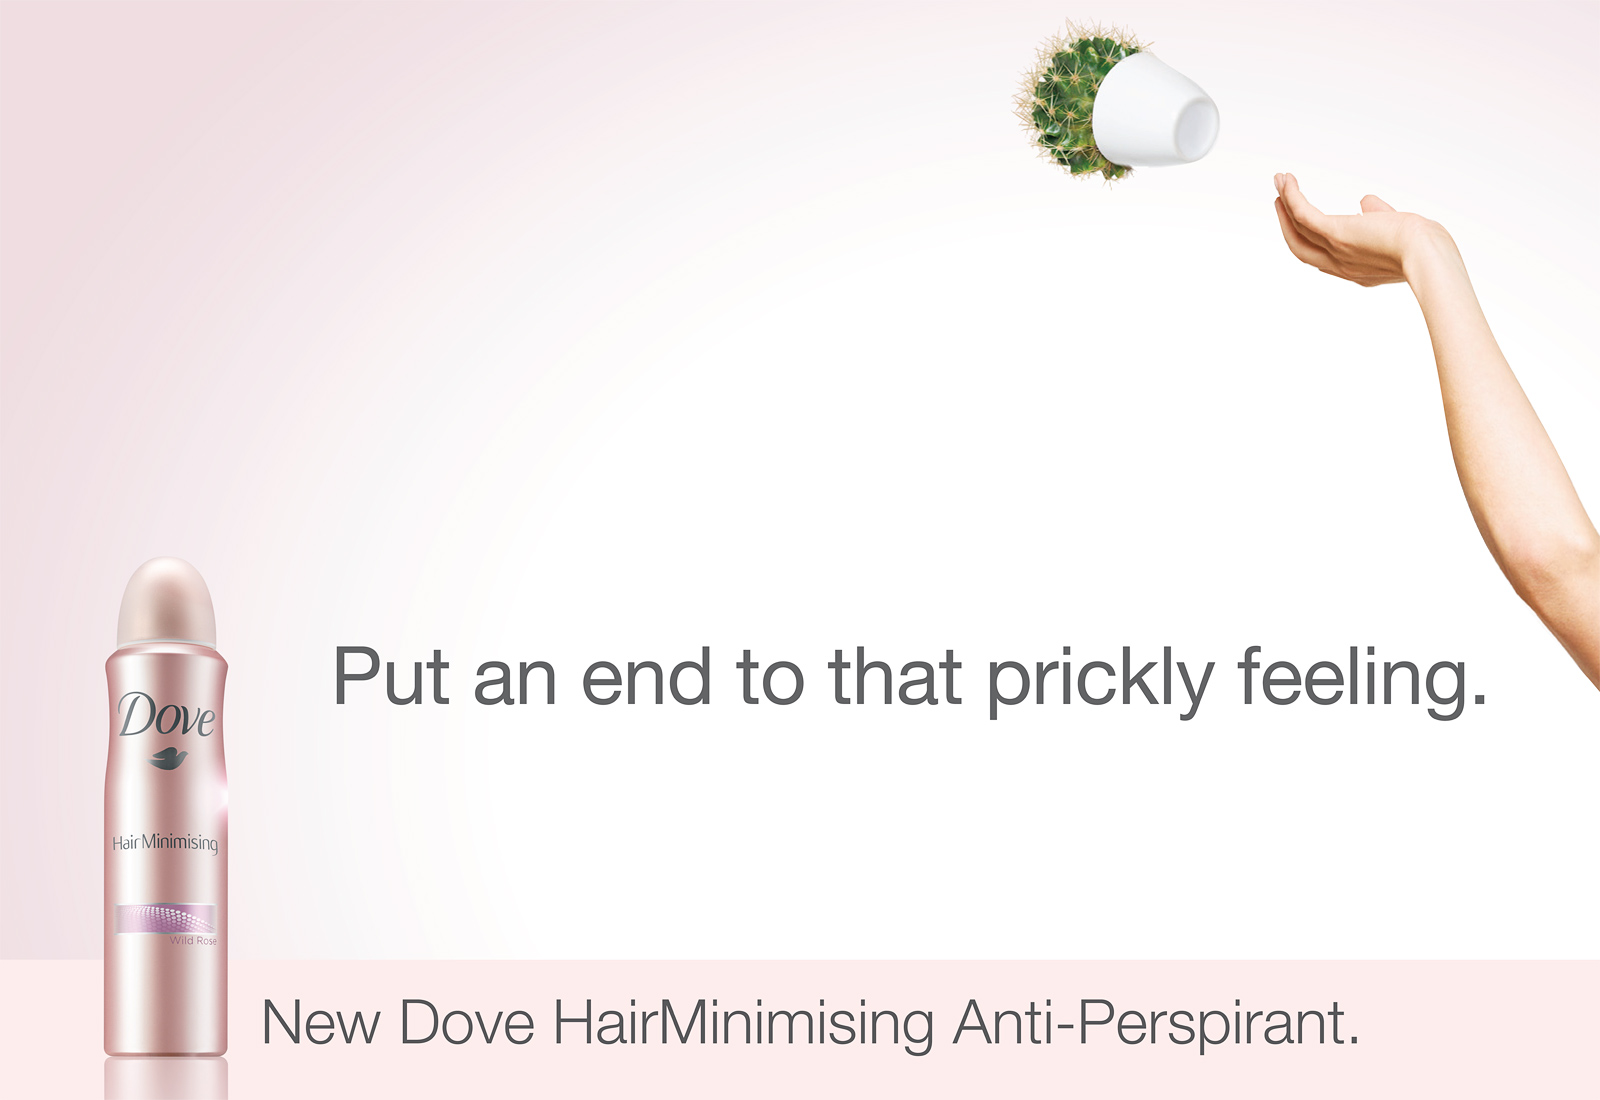 dove minimixing